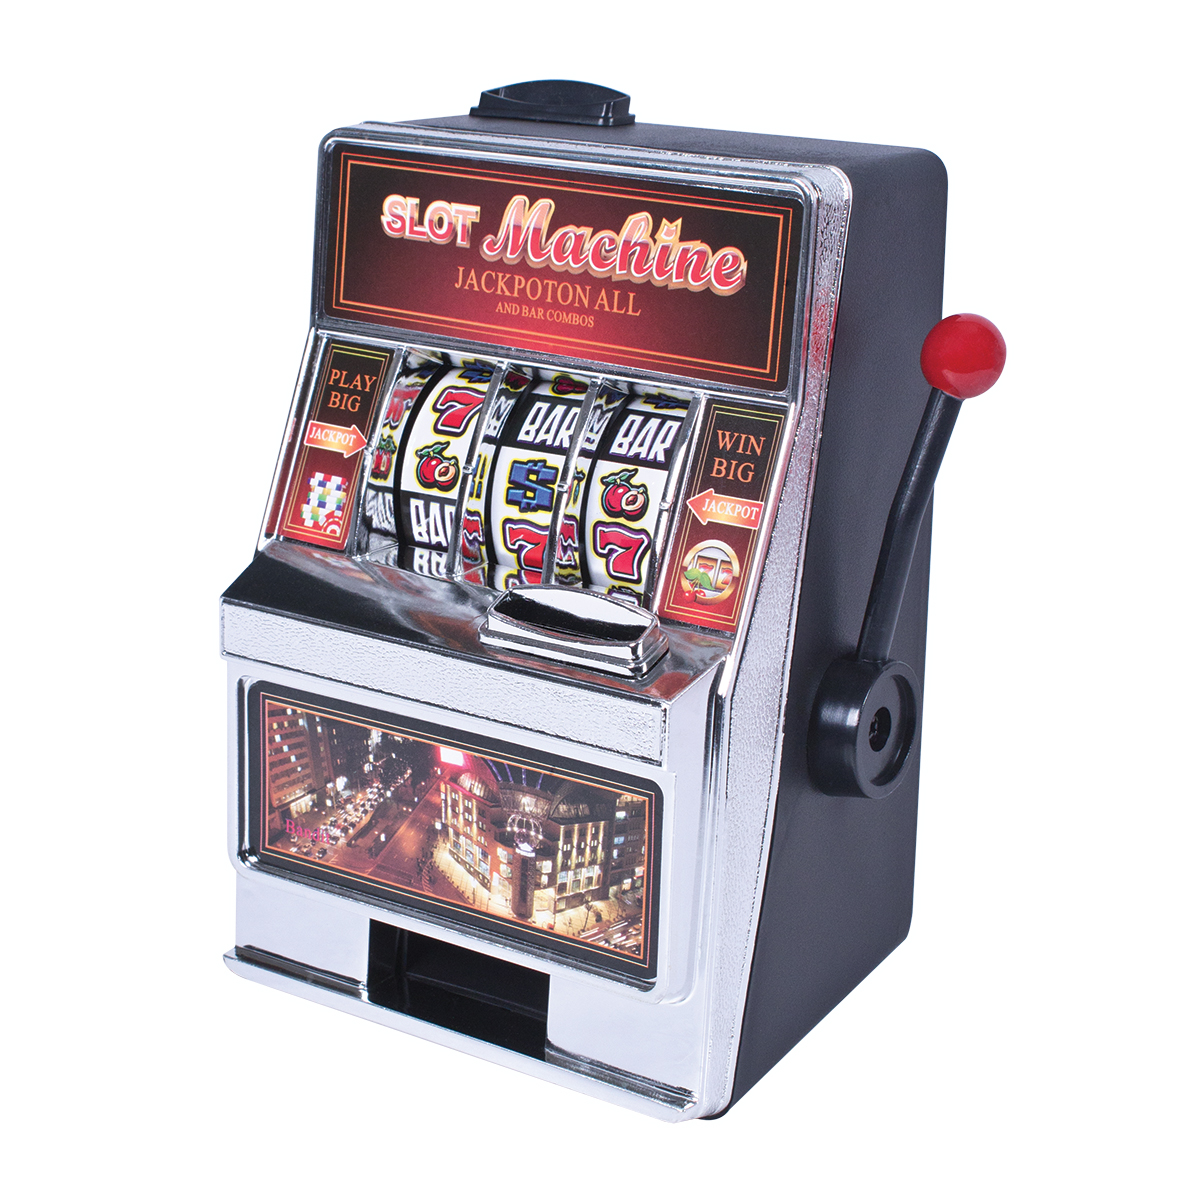 Gta casino slot machine odds